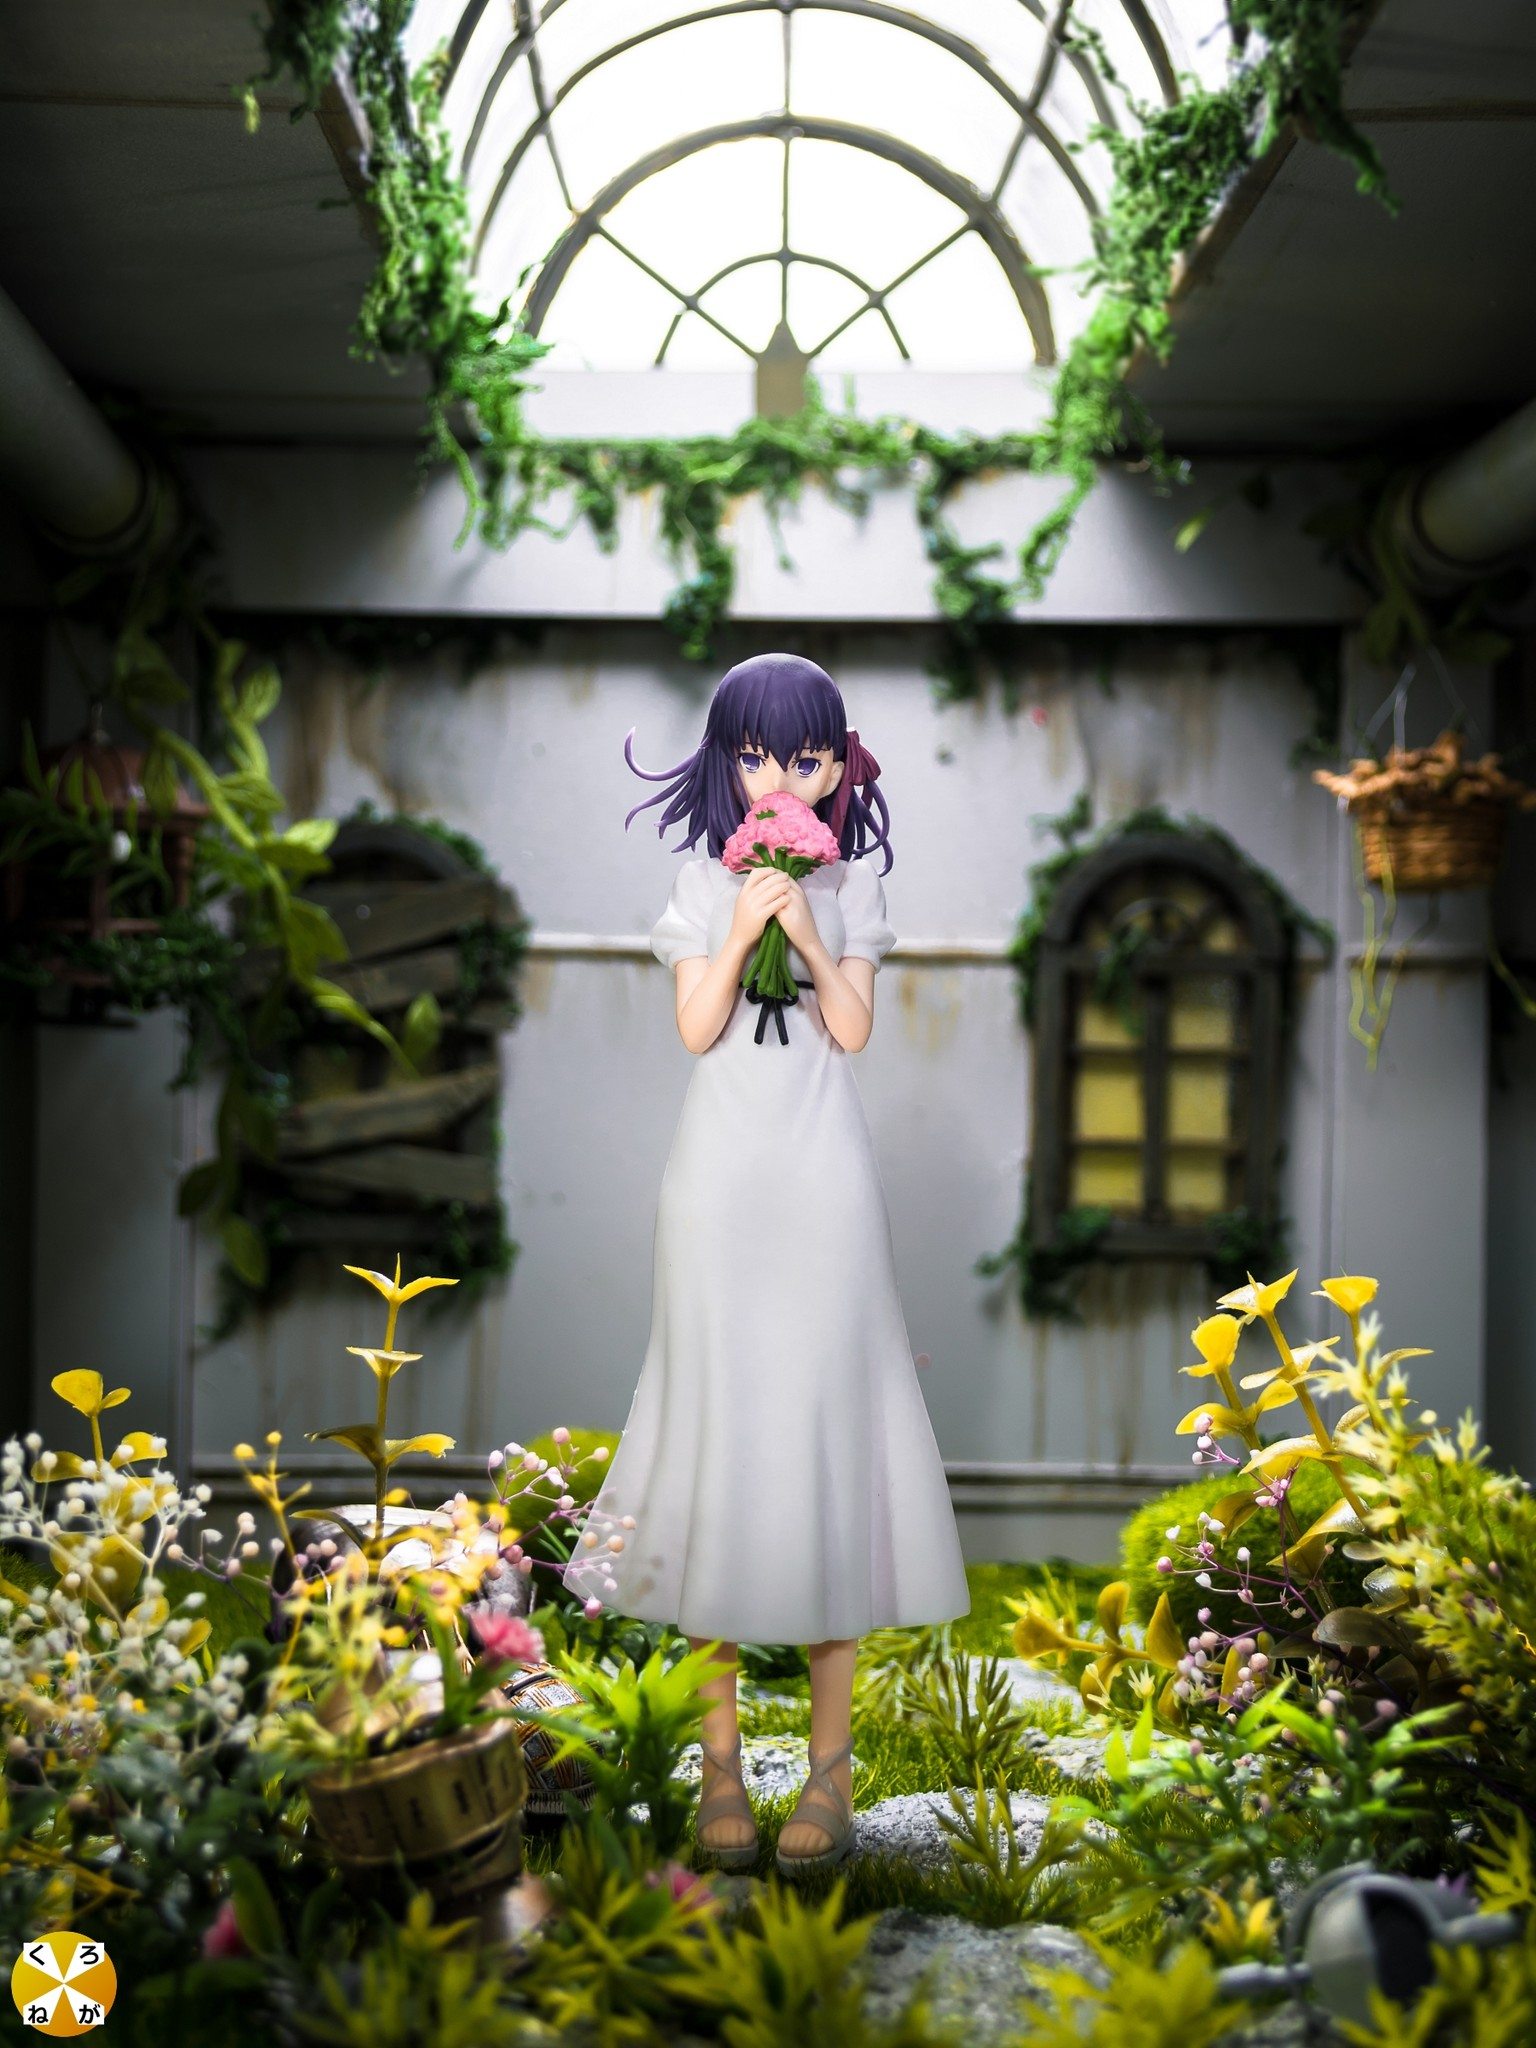 type_moon banpresto matou_sakura sq gekijouban_fate/stay_night_heaven's_feel